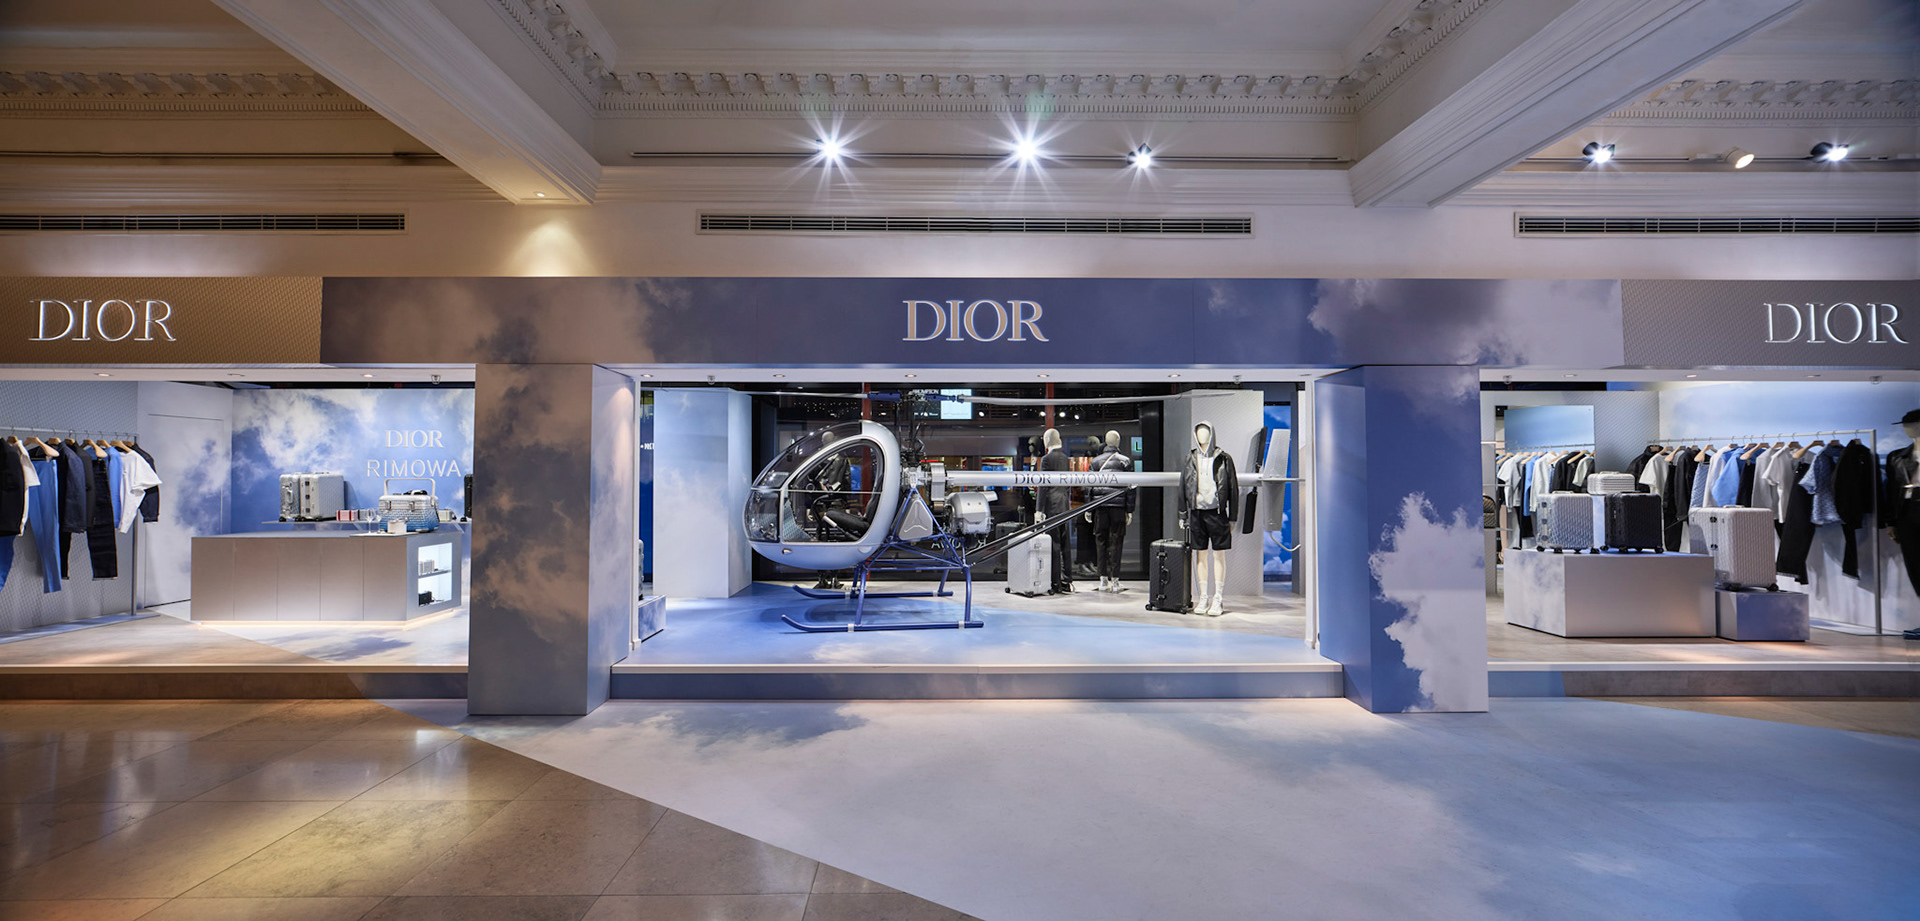 Retail photography dior rimowa at harrods london wide panoramic with helicopter